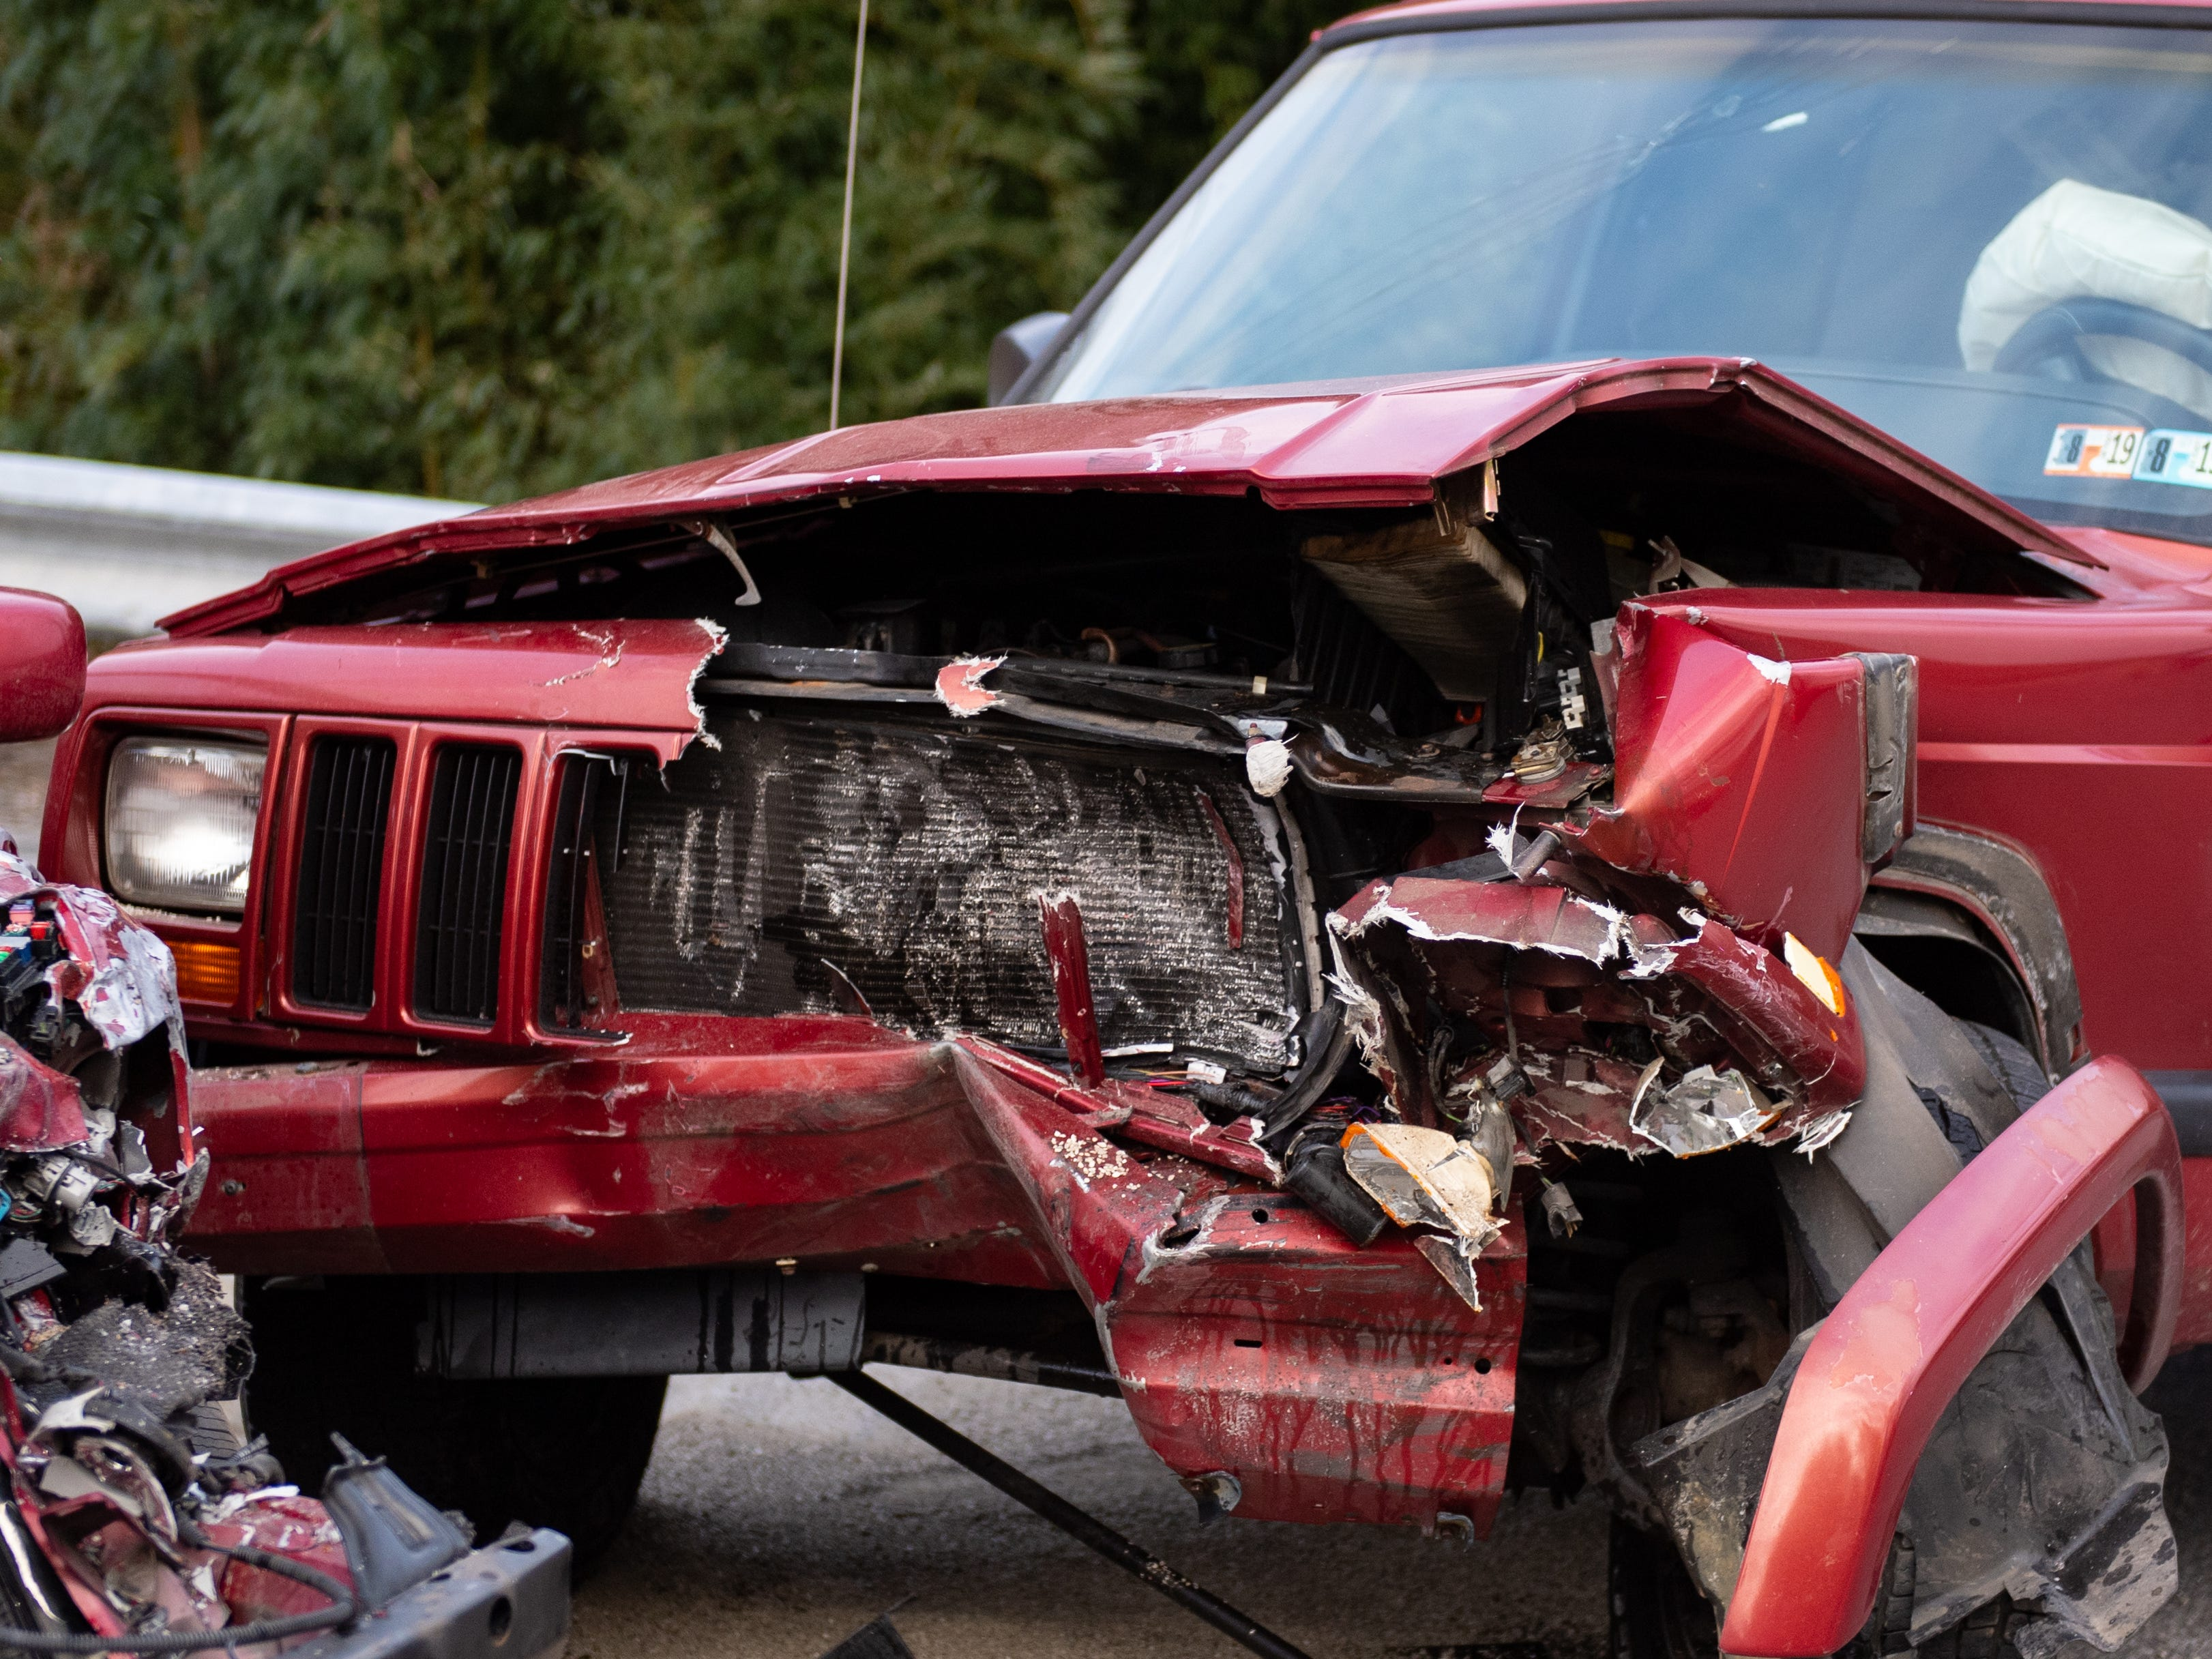 The SUV's front end is fairly torn up as a result of the collision, November 23, 2018.